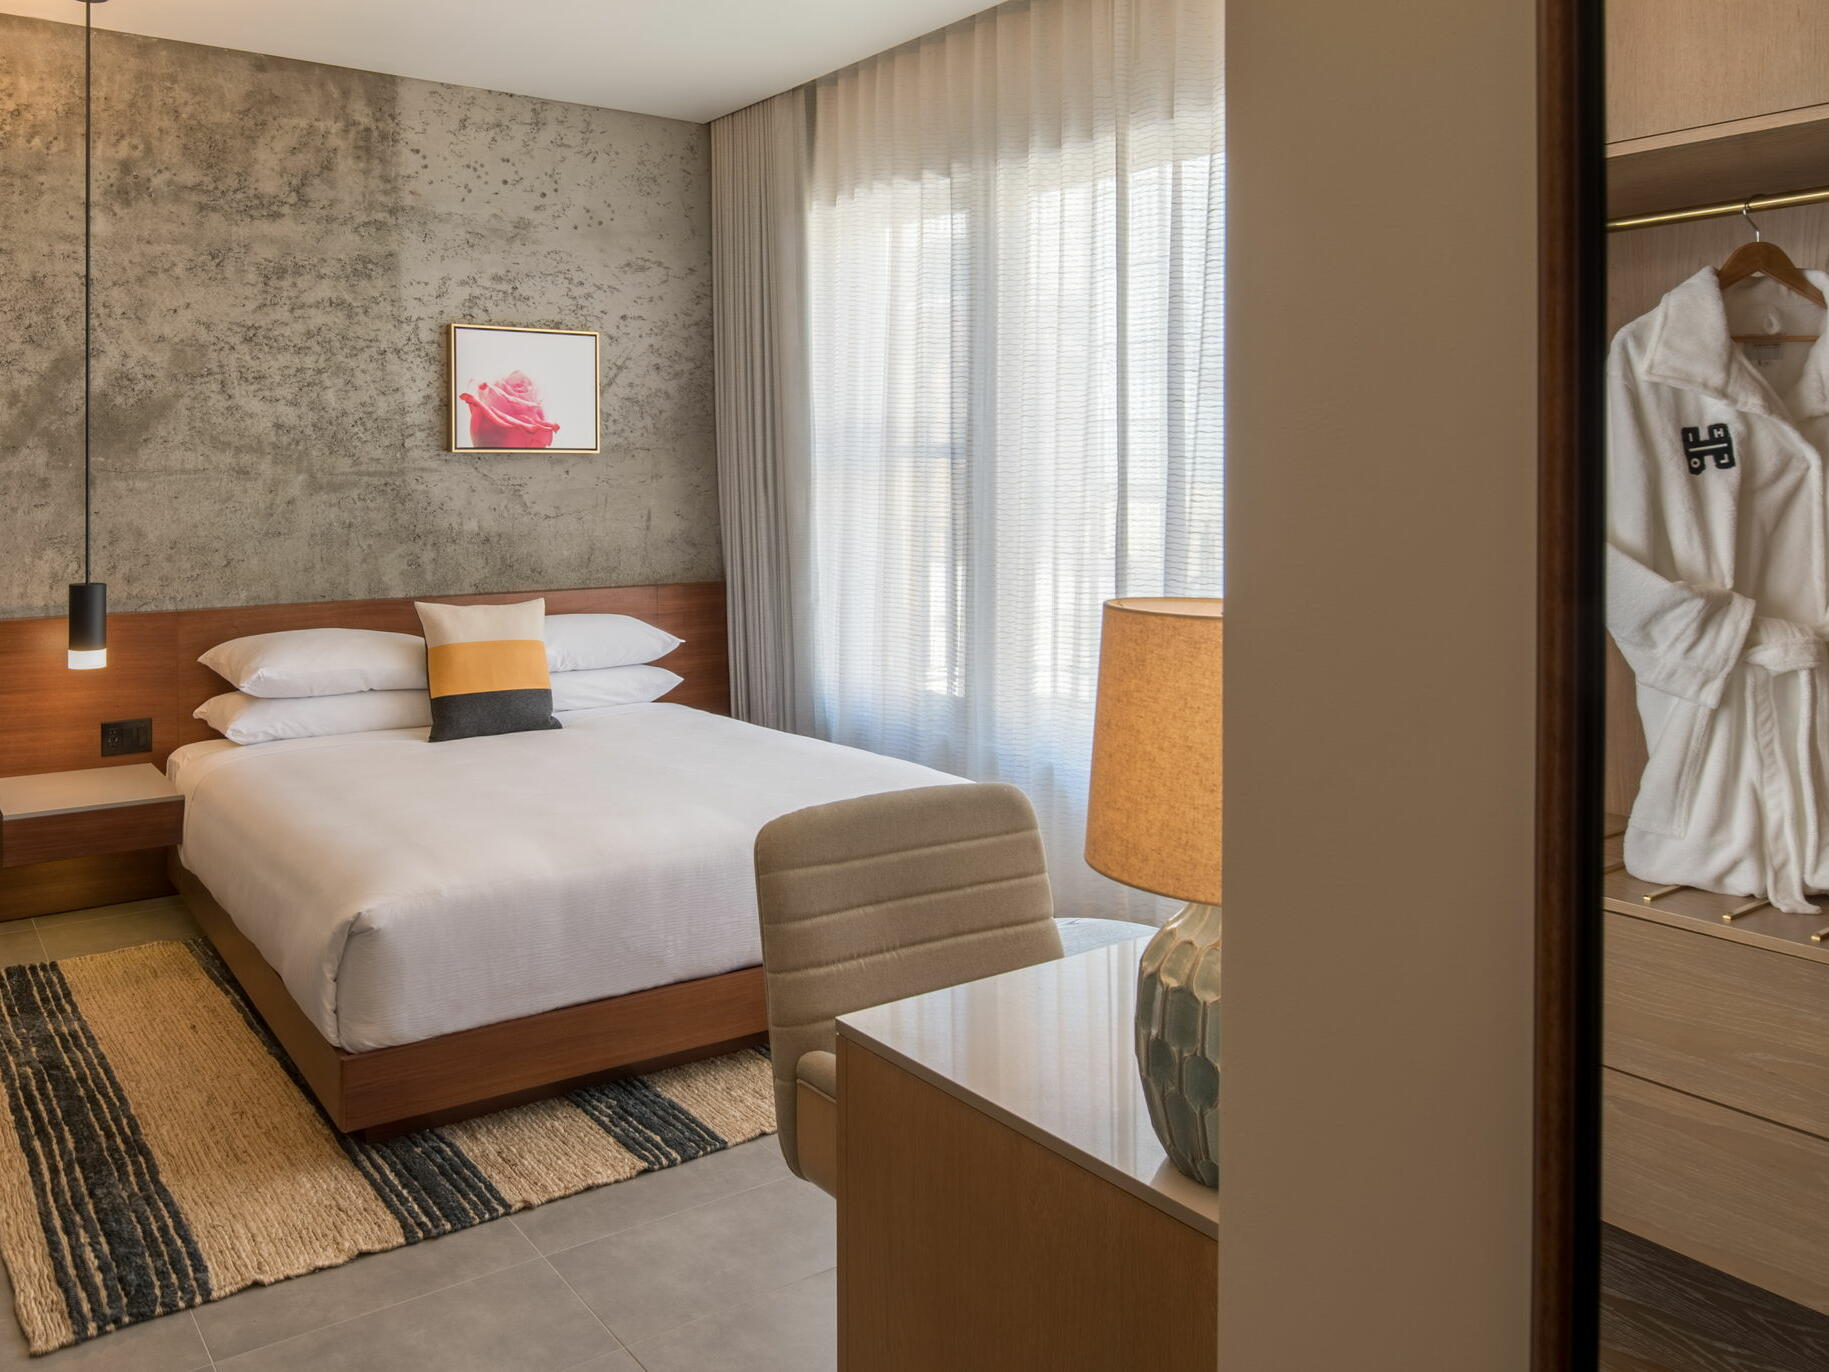 Hi-Lo hotel room with bed and robe in closet